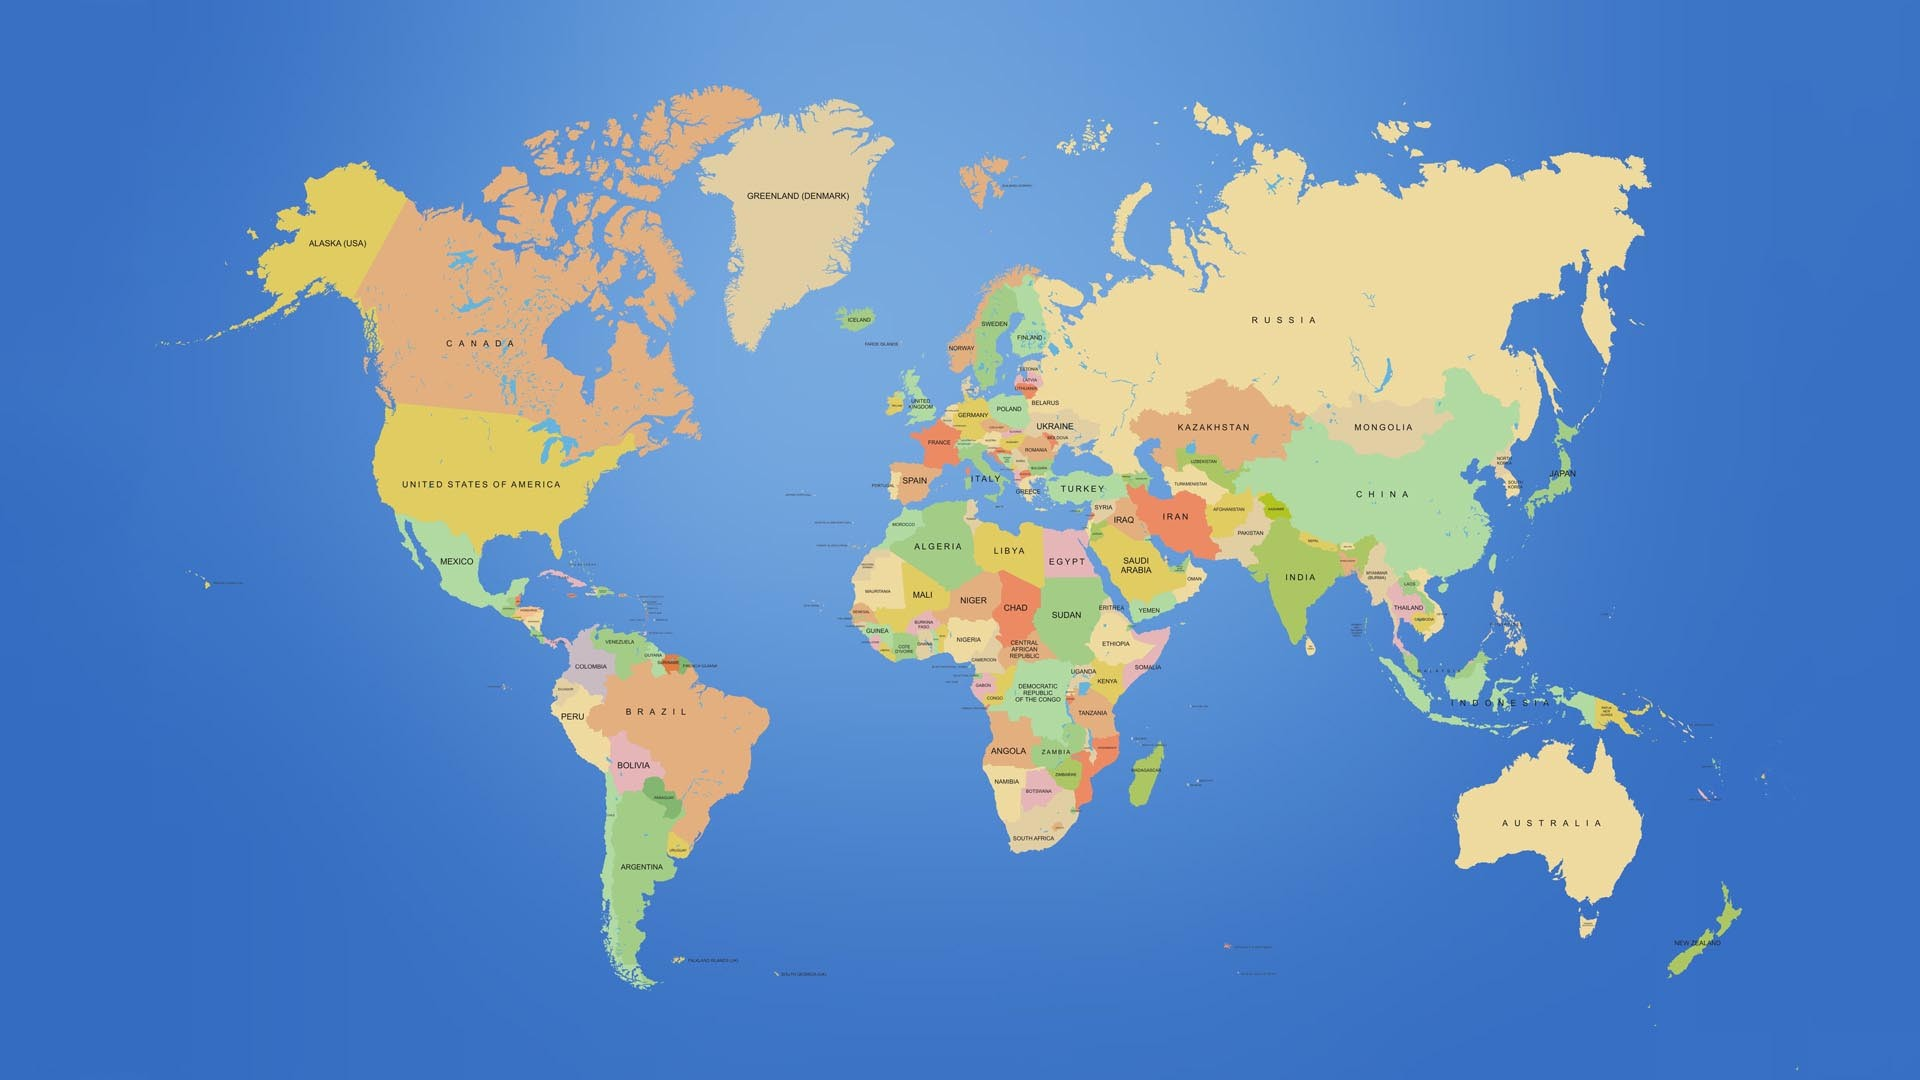 World Map Wallpaper ① Download Free Amazing Backgrounds For - World map full size download